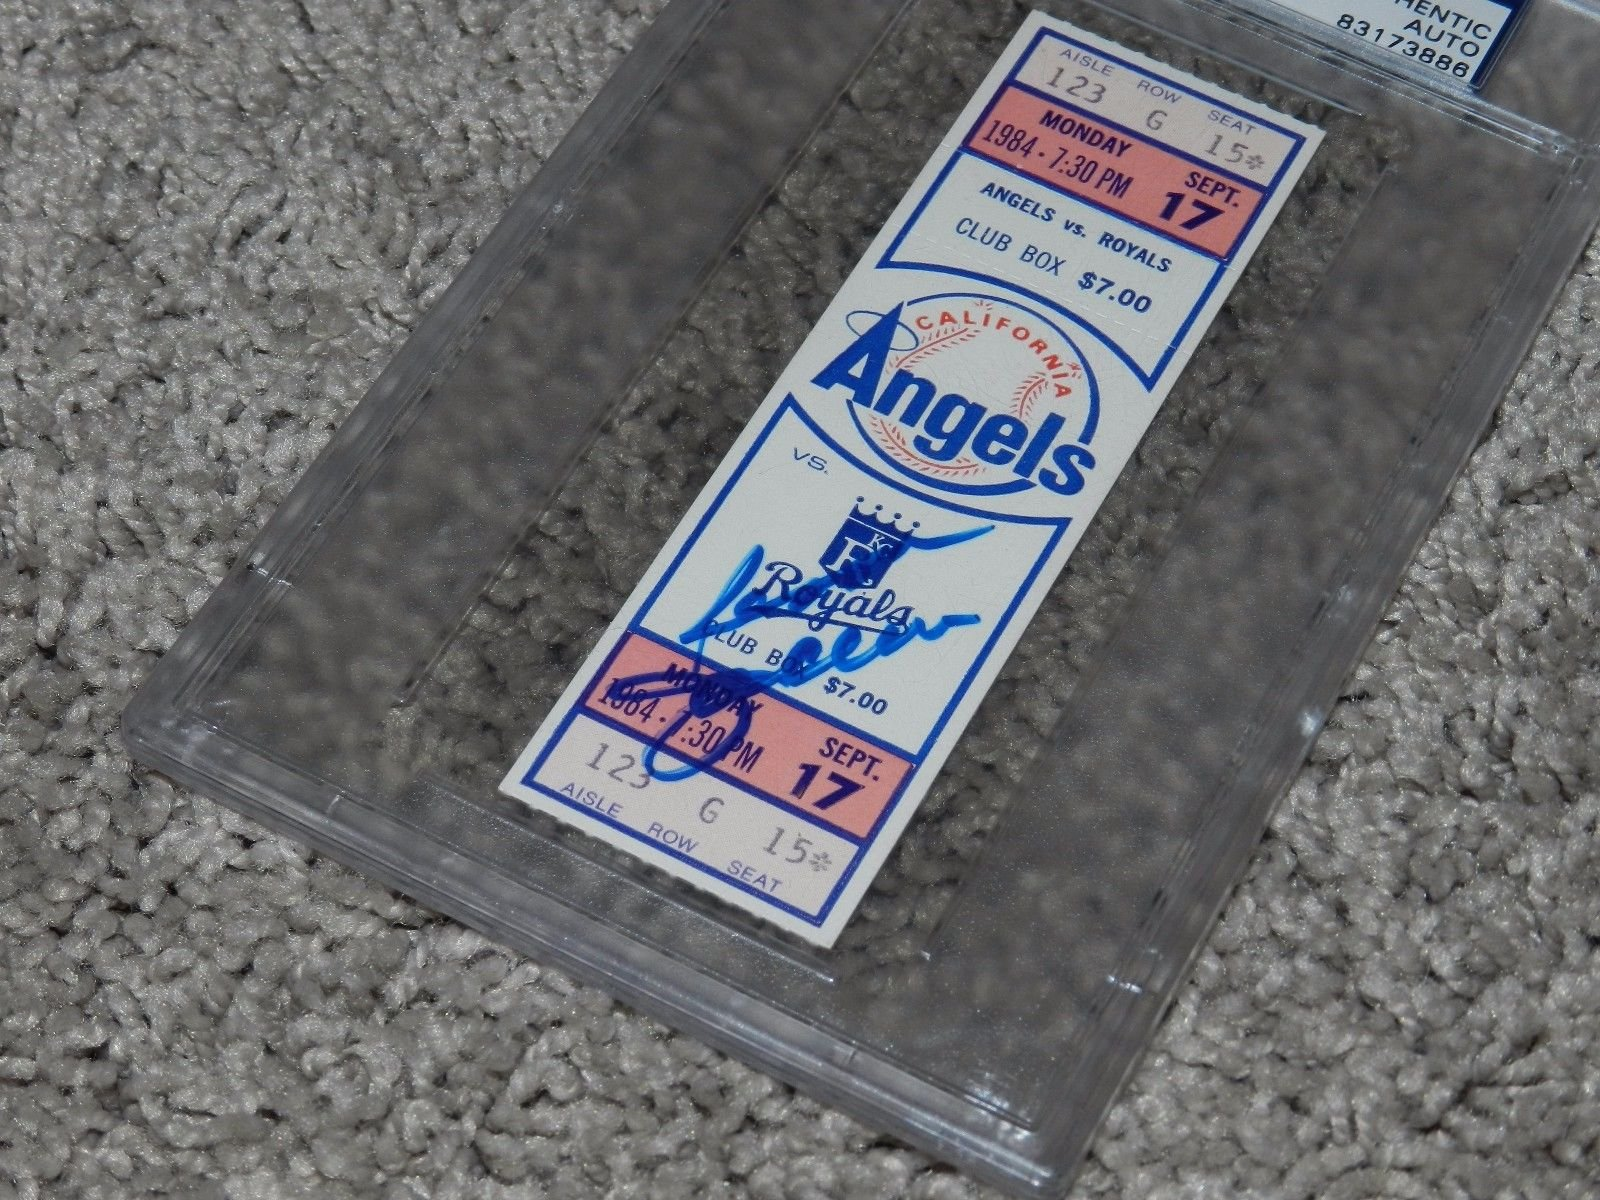 Reggie Jackson 9/17/84 Autographed Signed 500 Homerun Game Ticket Stub PSA/DNA